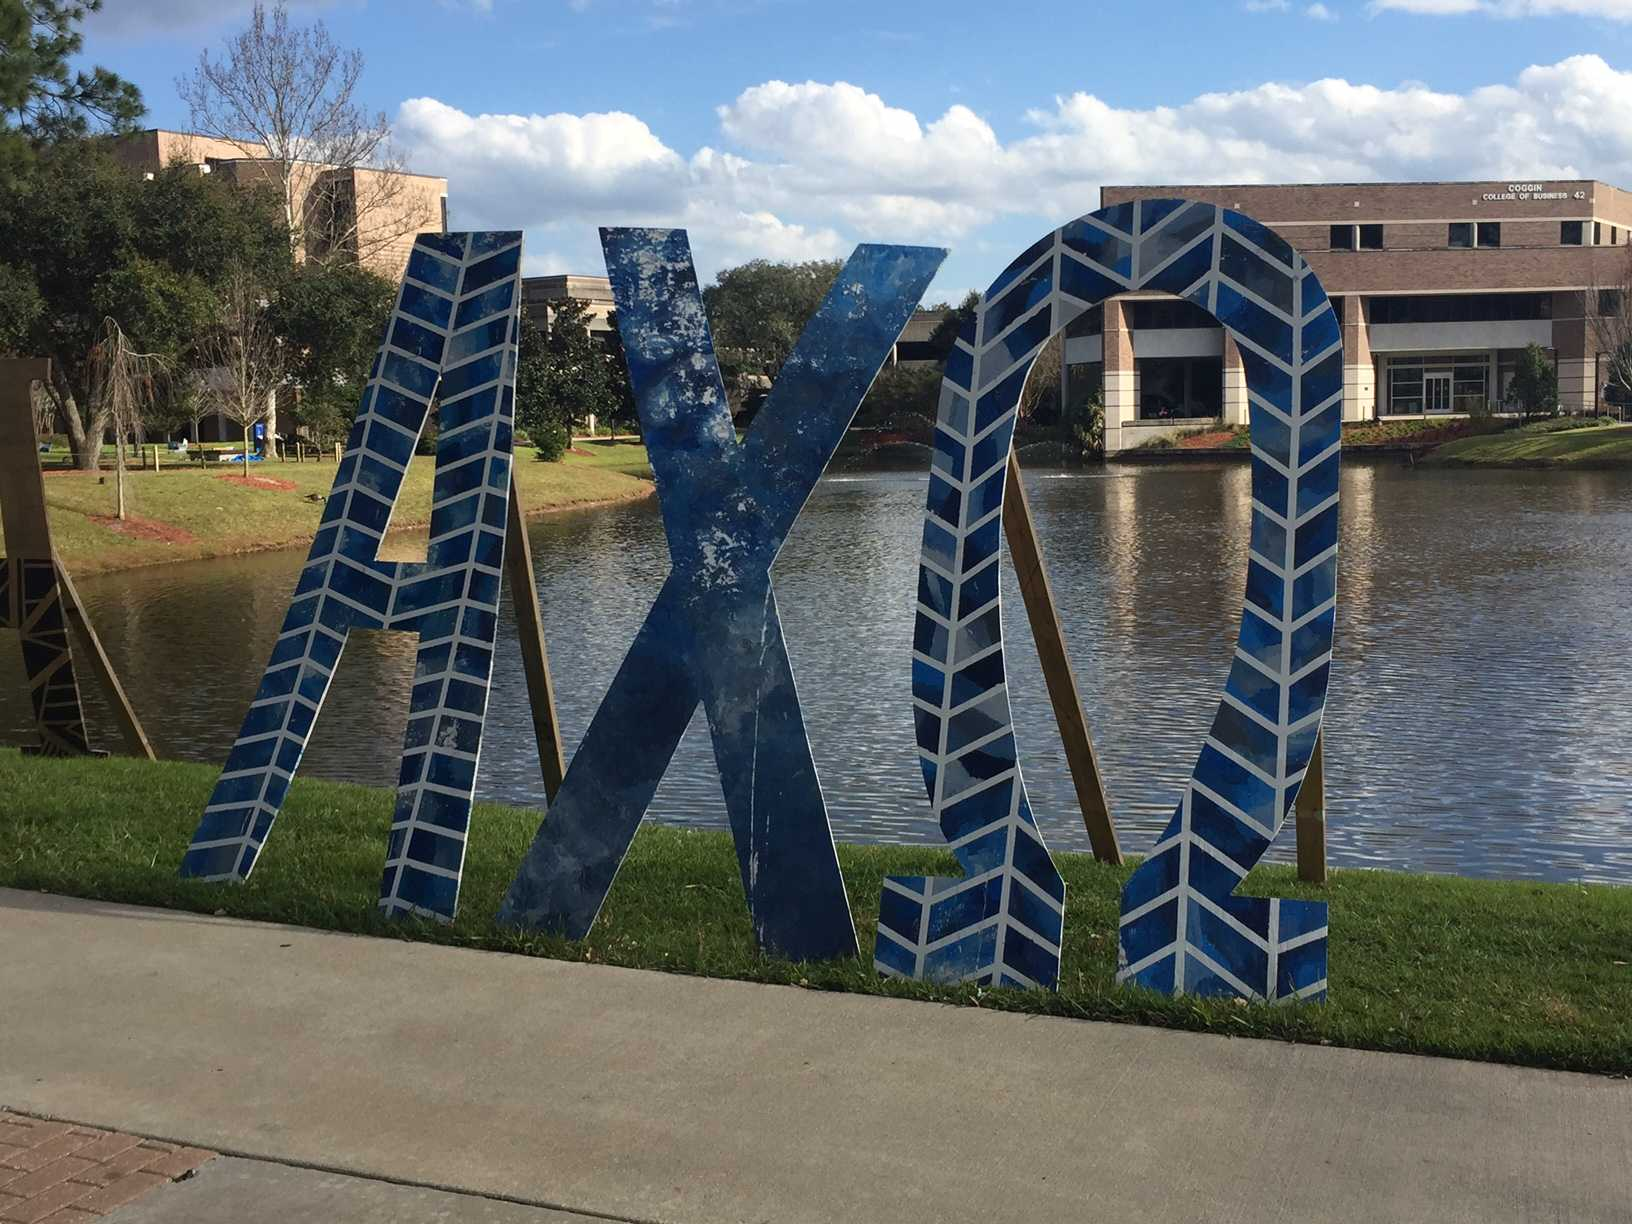 It's Greek to me: a guide to sororities and fraternities at UNF